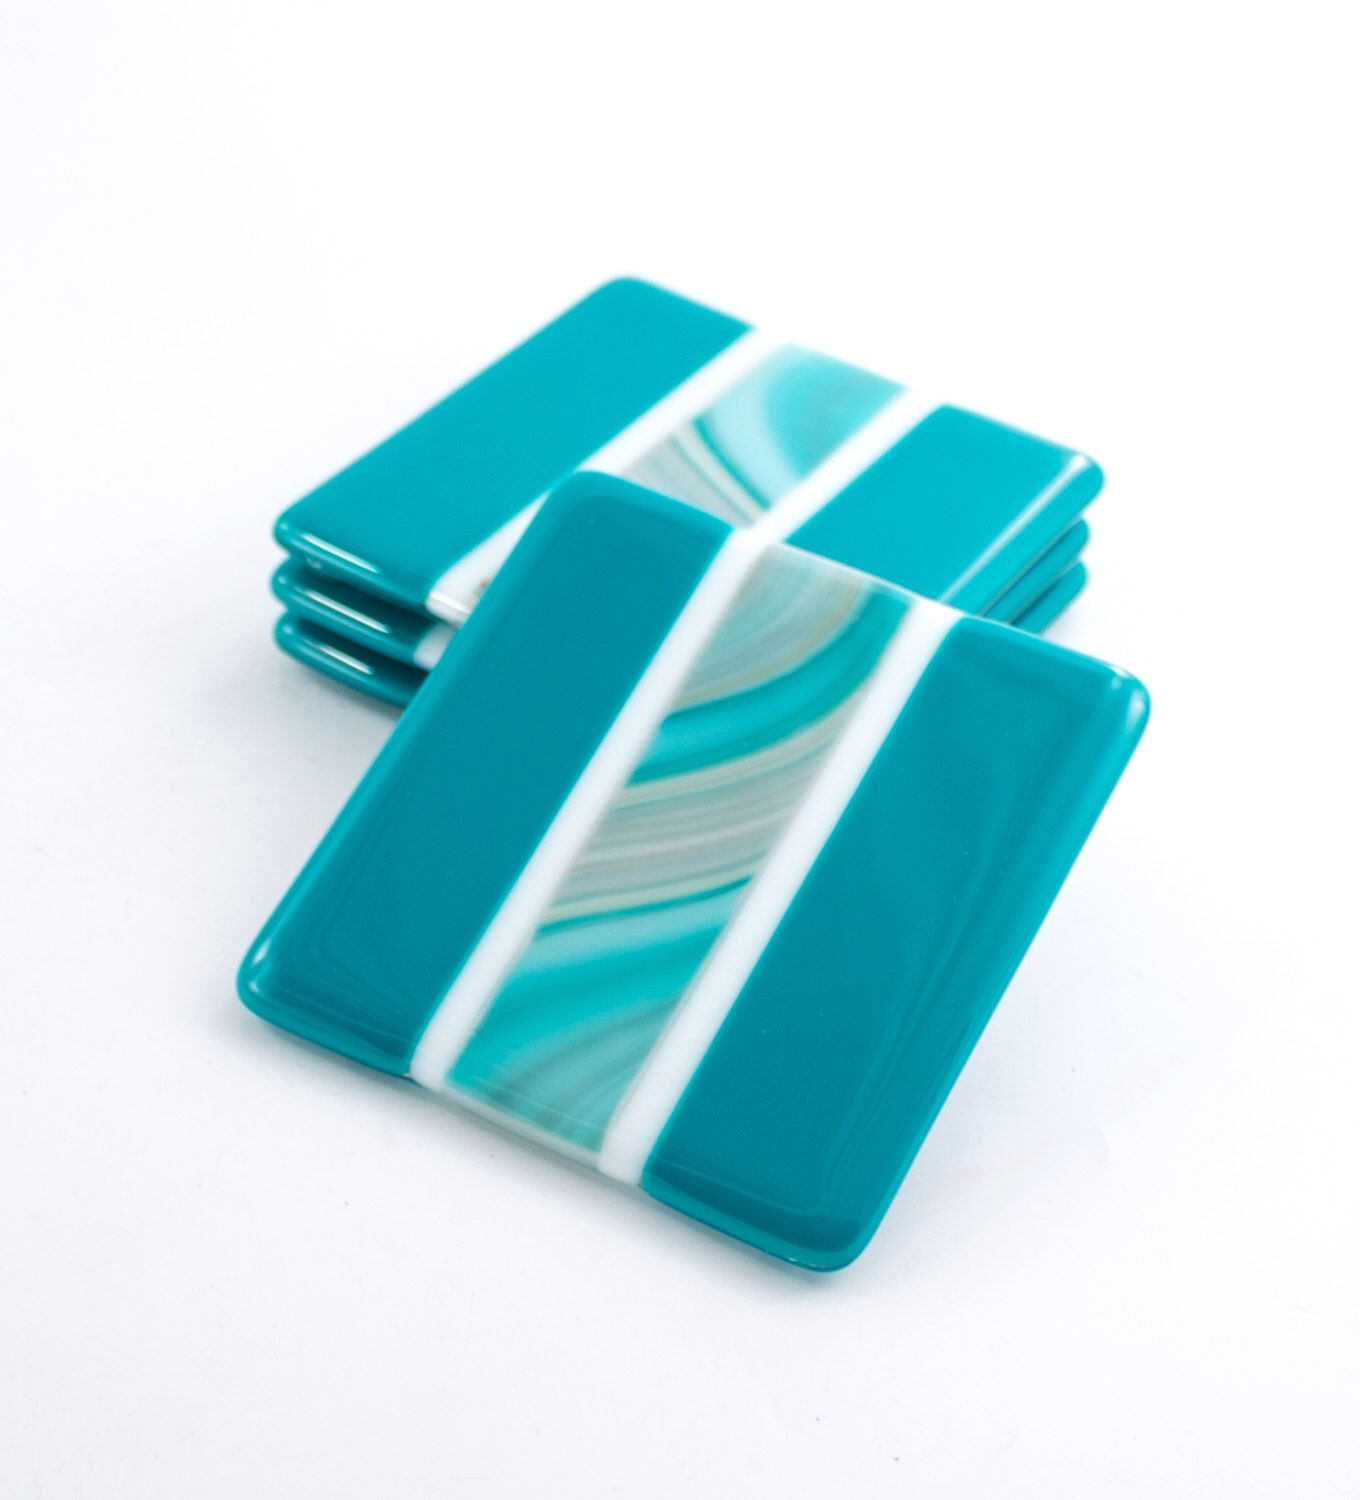 fused glass drink coasters  set of   teal home decor  modern  - fused glass drink coasters  set of   teal home decor  modern barware coffee table decorations  bar accessories  unique hostess gift